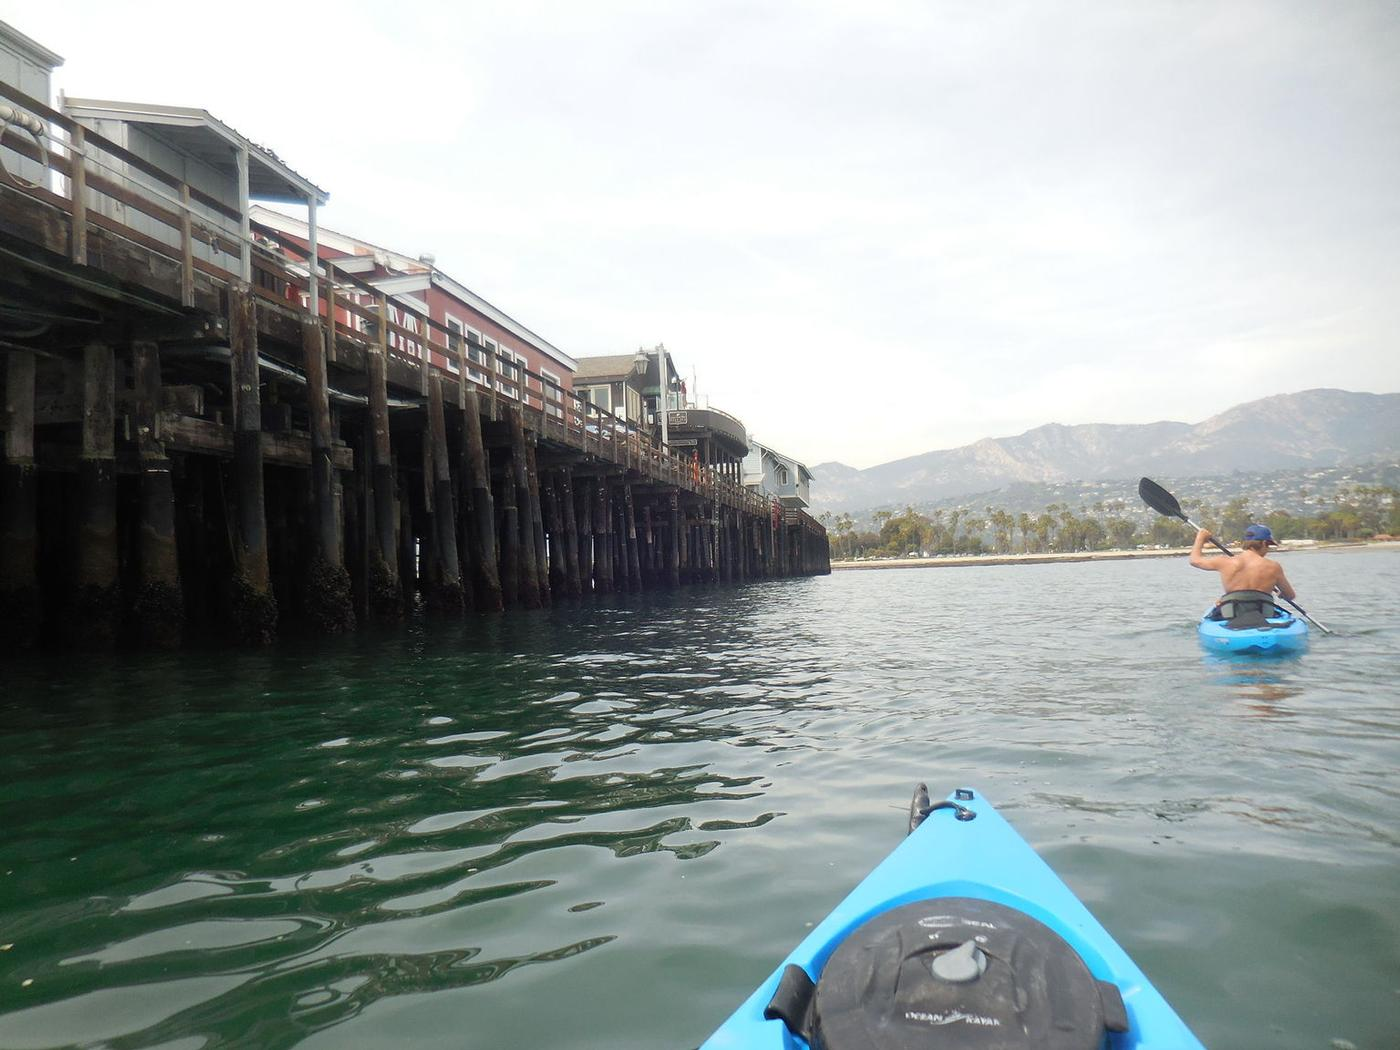 Checking out the Stearns Wharf off the Santa Barbara coast.